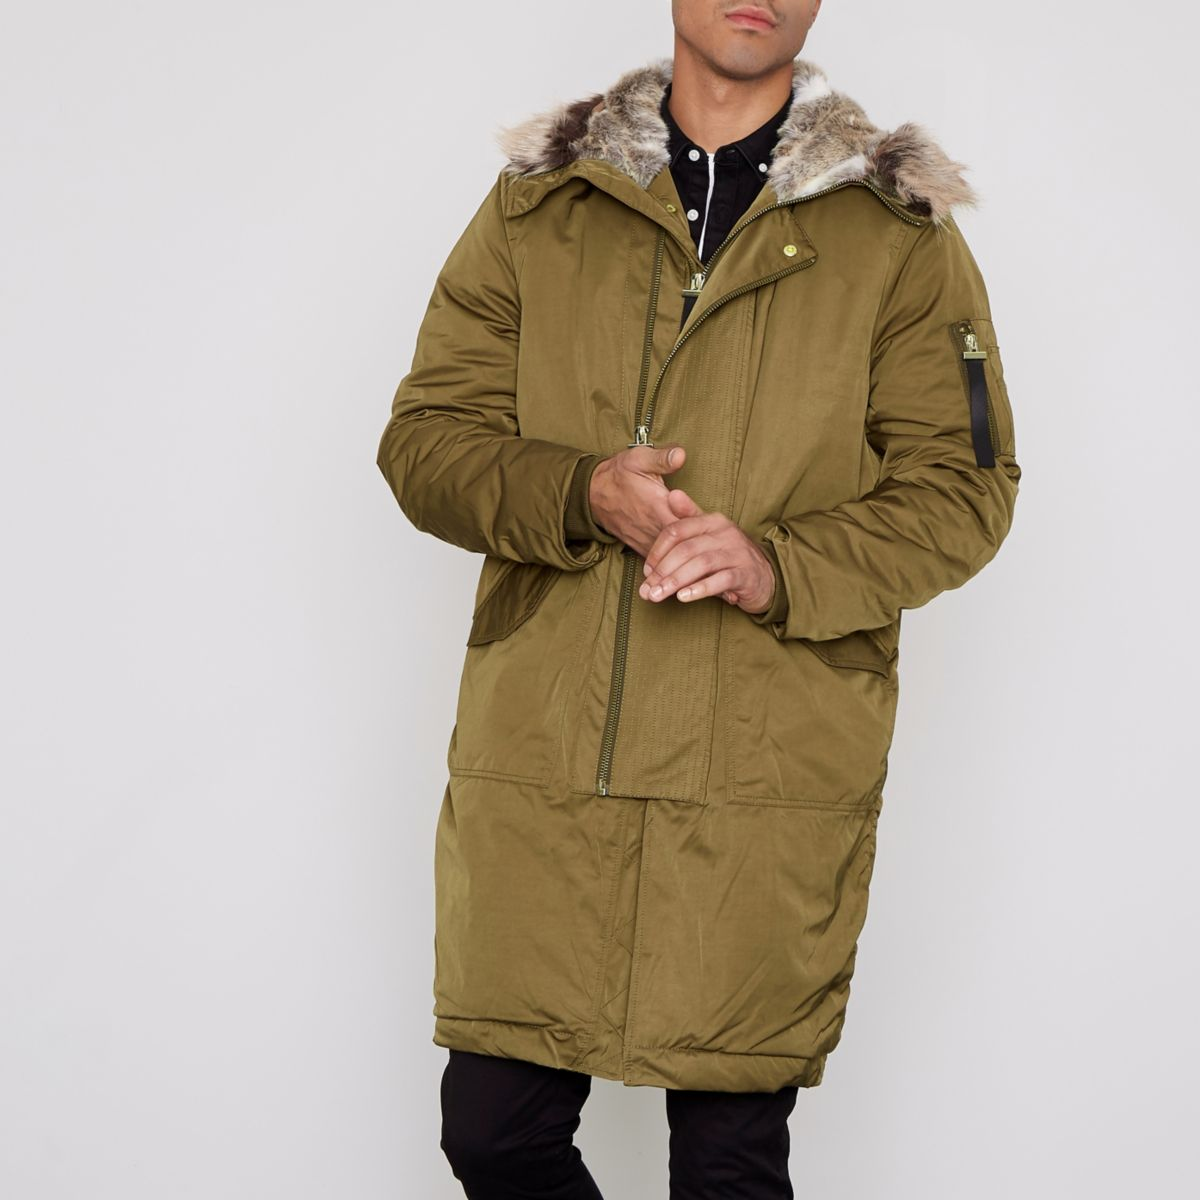 Men's Parka Coats and Jackets. Since a coat lasts longer than one season, choosing a new one is an important decision. Style and functionality are the main considerations involved in your choice. If staying warm is the priority, a hooded parka is most appropriate, but in milder conditions, design might play a bigger role in a lighter jacket.